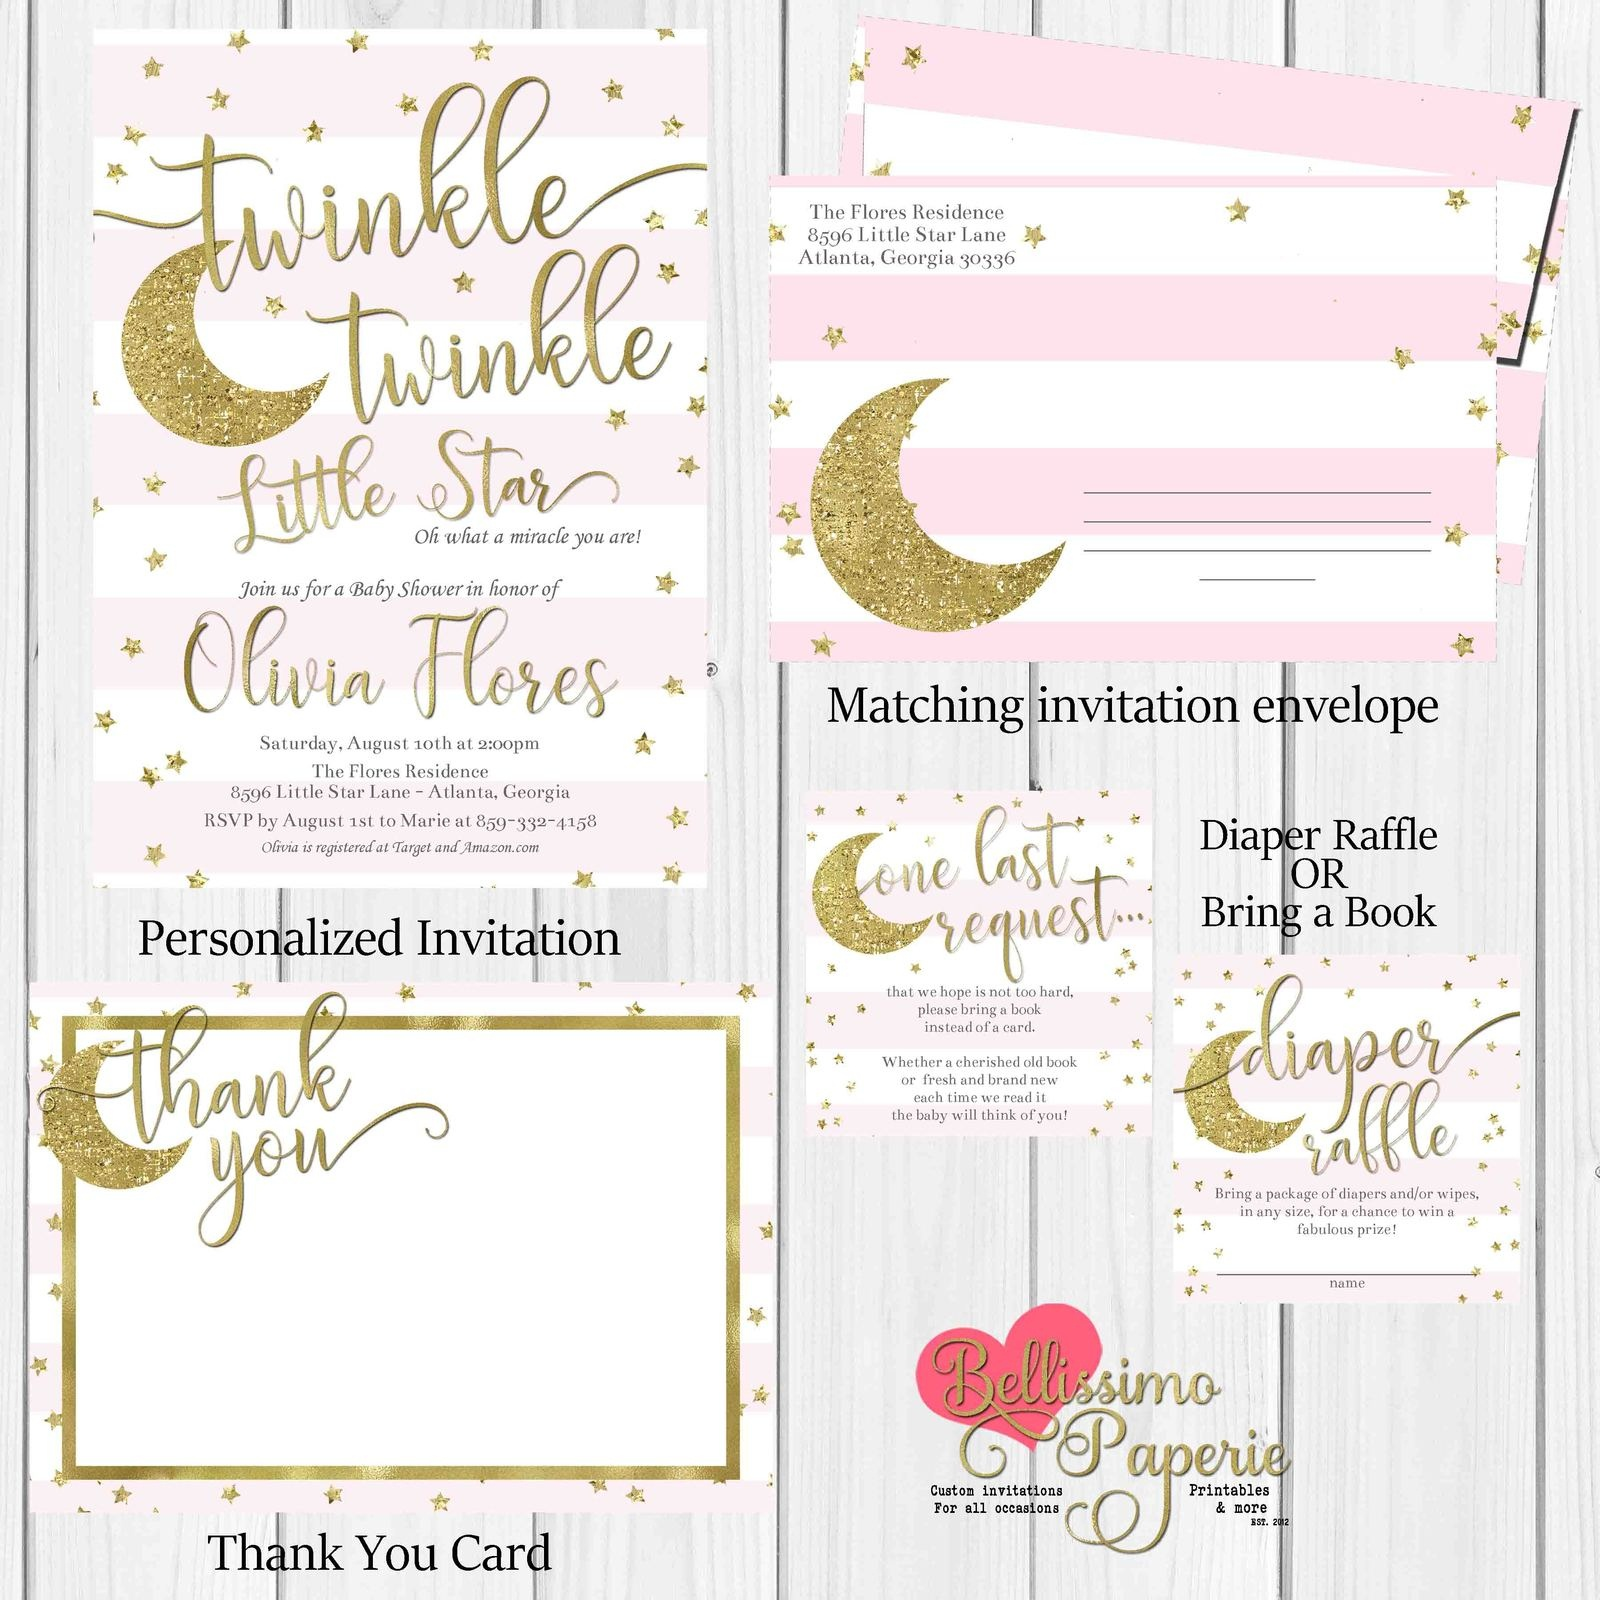 Twinkle Twinkle Little Star Baby Shower And 50 Similar Items - Twinkle Twinkle Little Star Baby Shower Free Printables